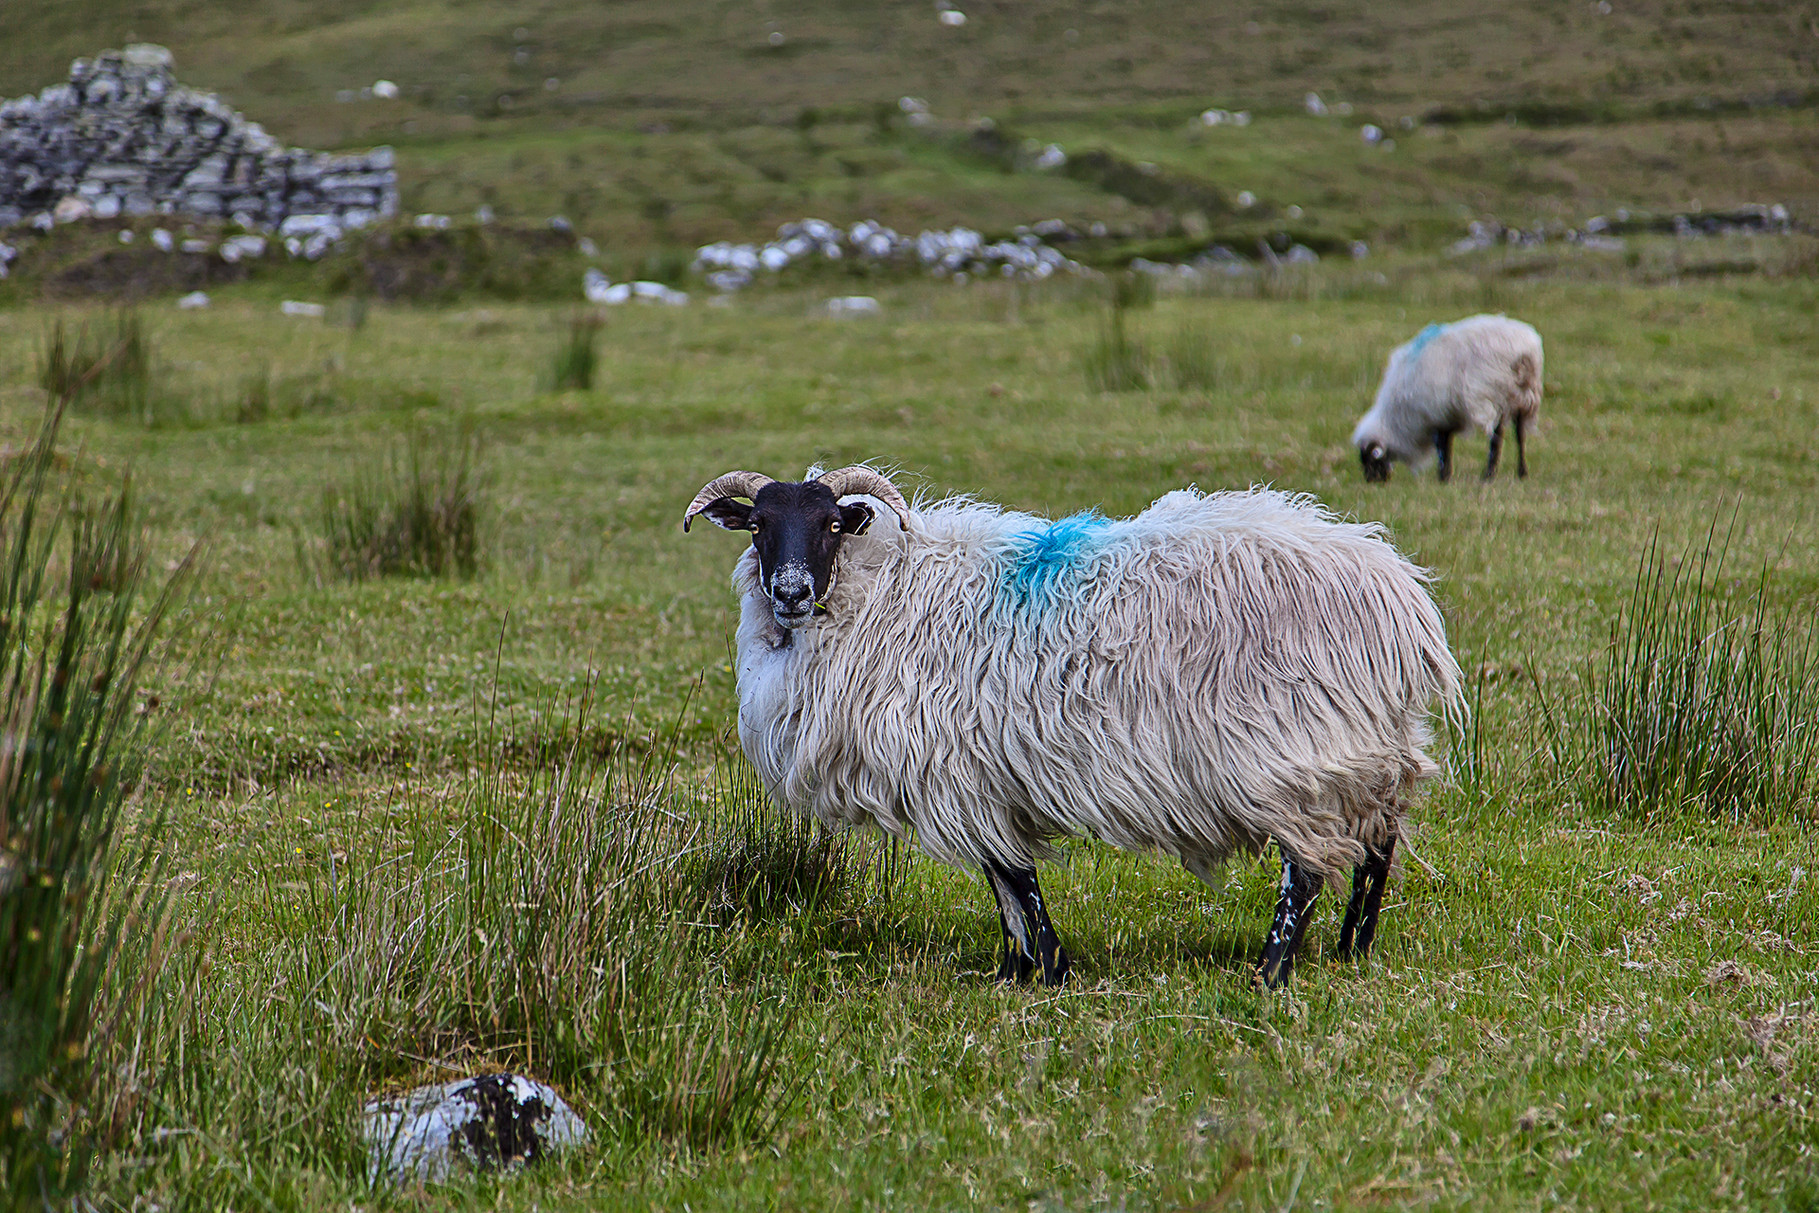 Sheep at the Deserted village on Achill Island, County Mayo